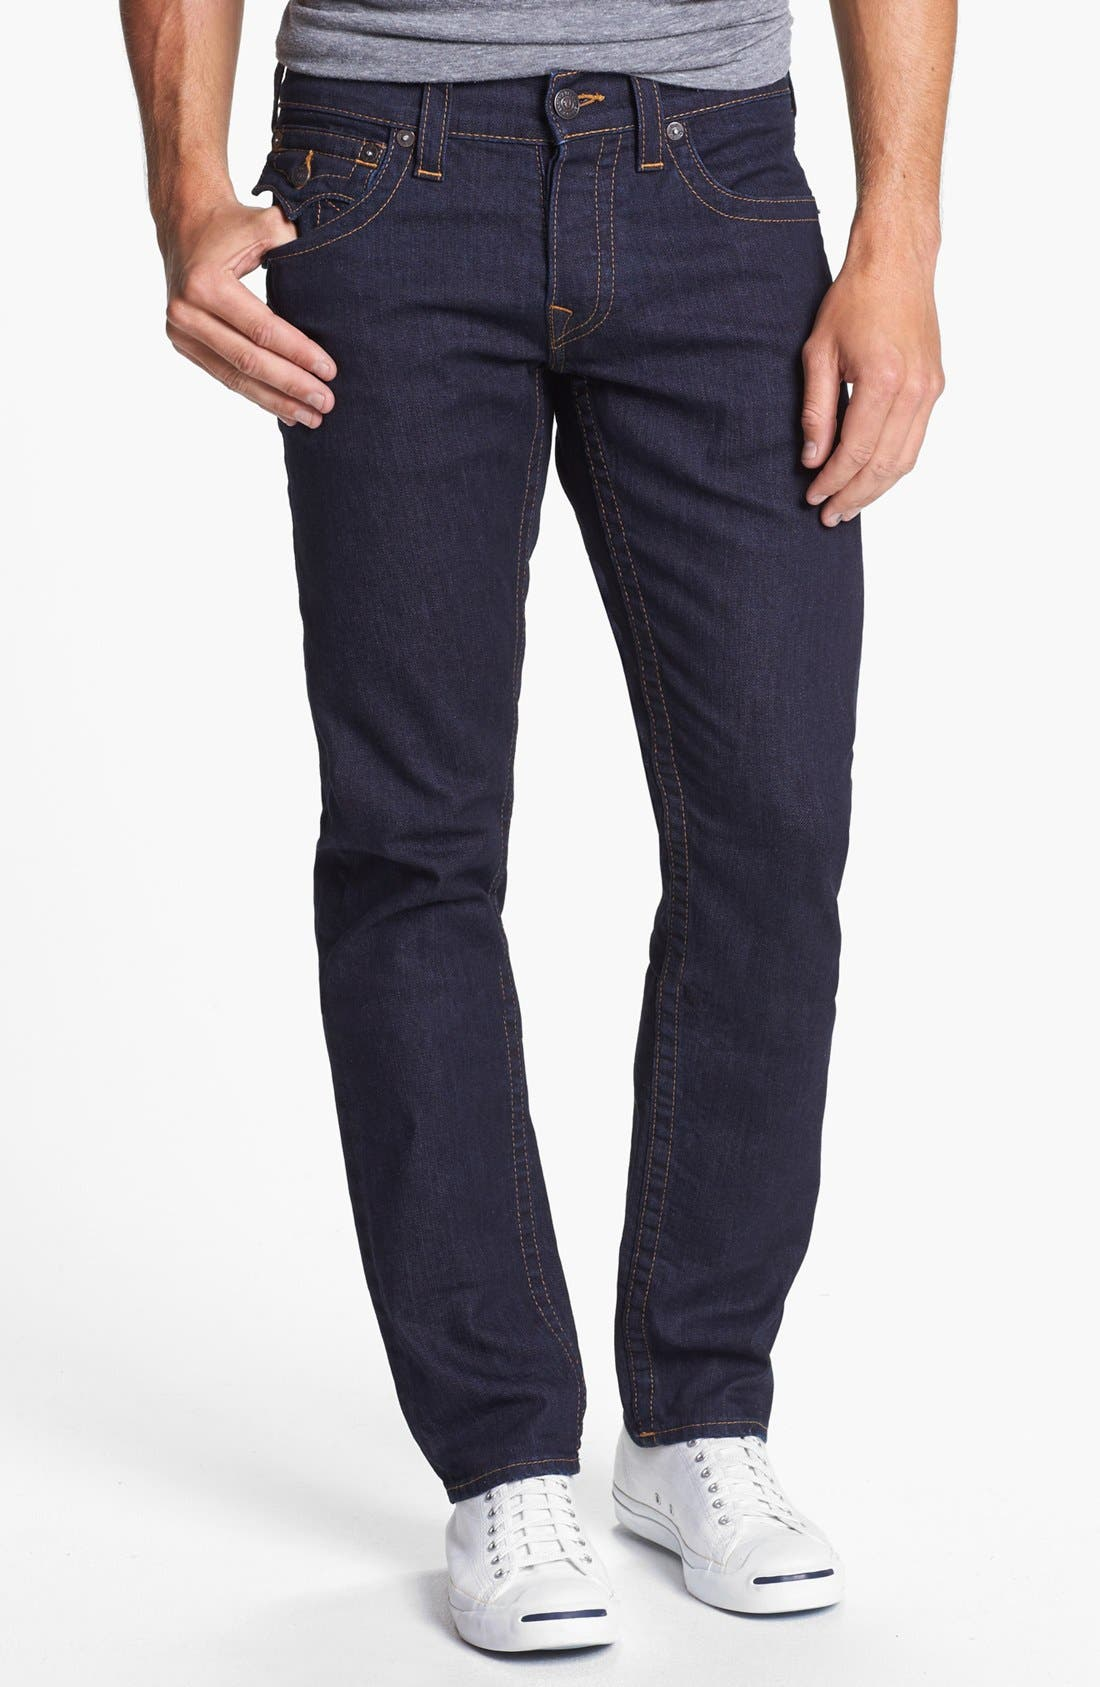 Alternate Image 2  - True Religion Brand Jeans 'Jack' Slim Fit Jeans (Midnight Blue)